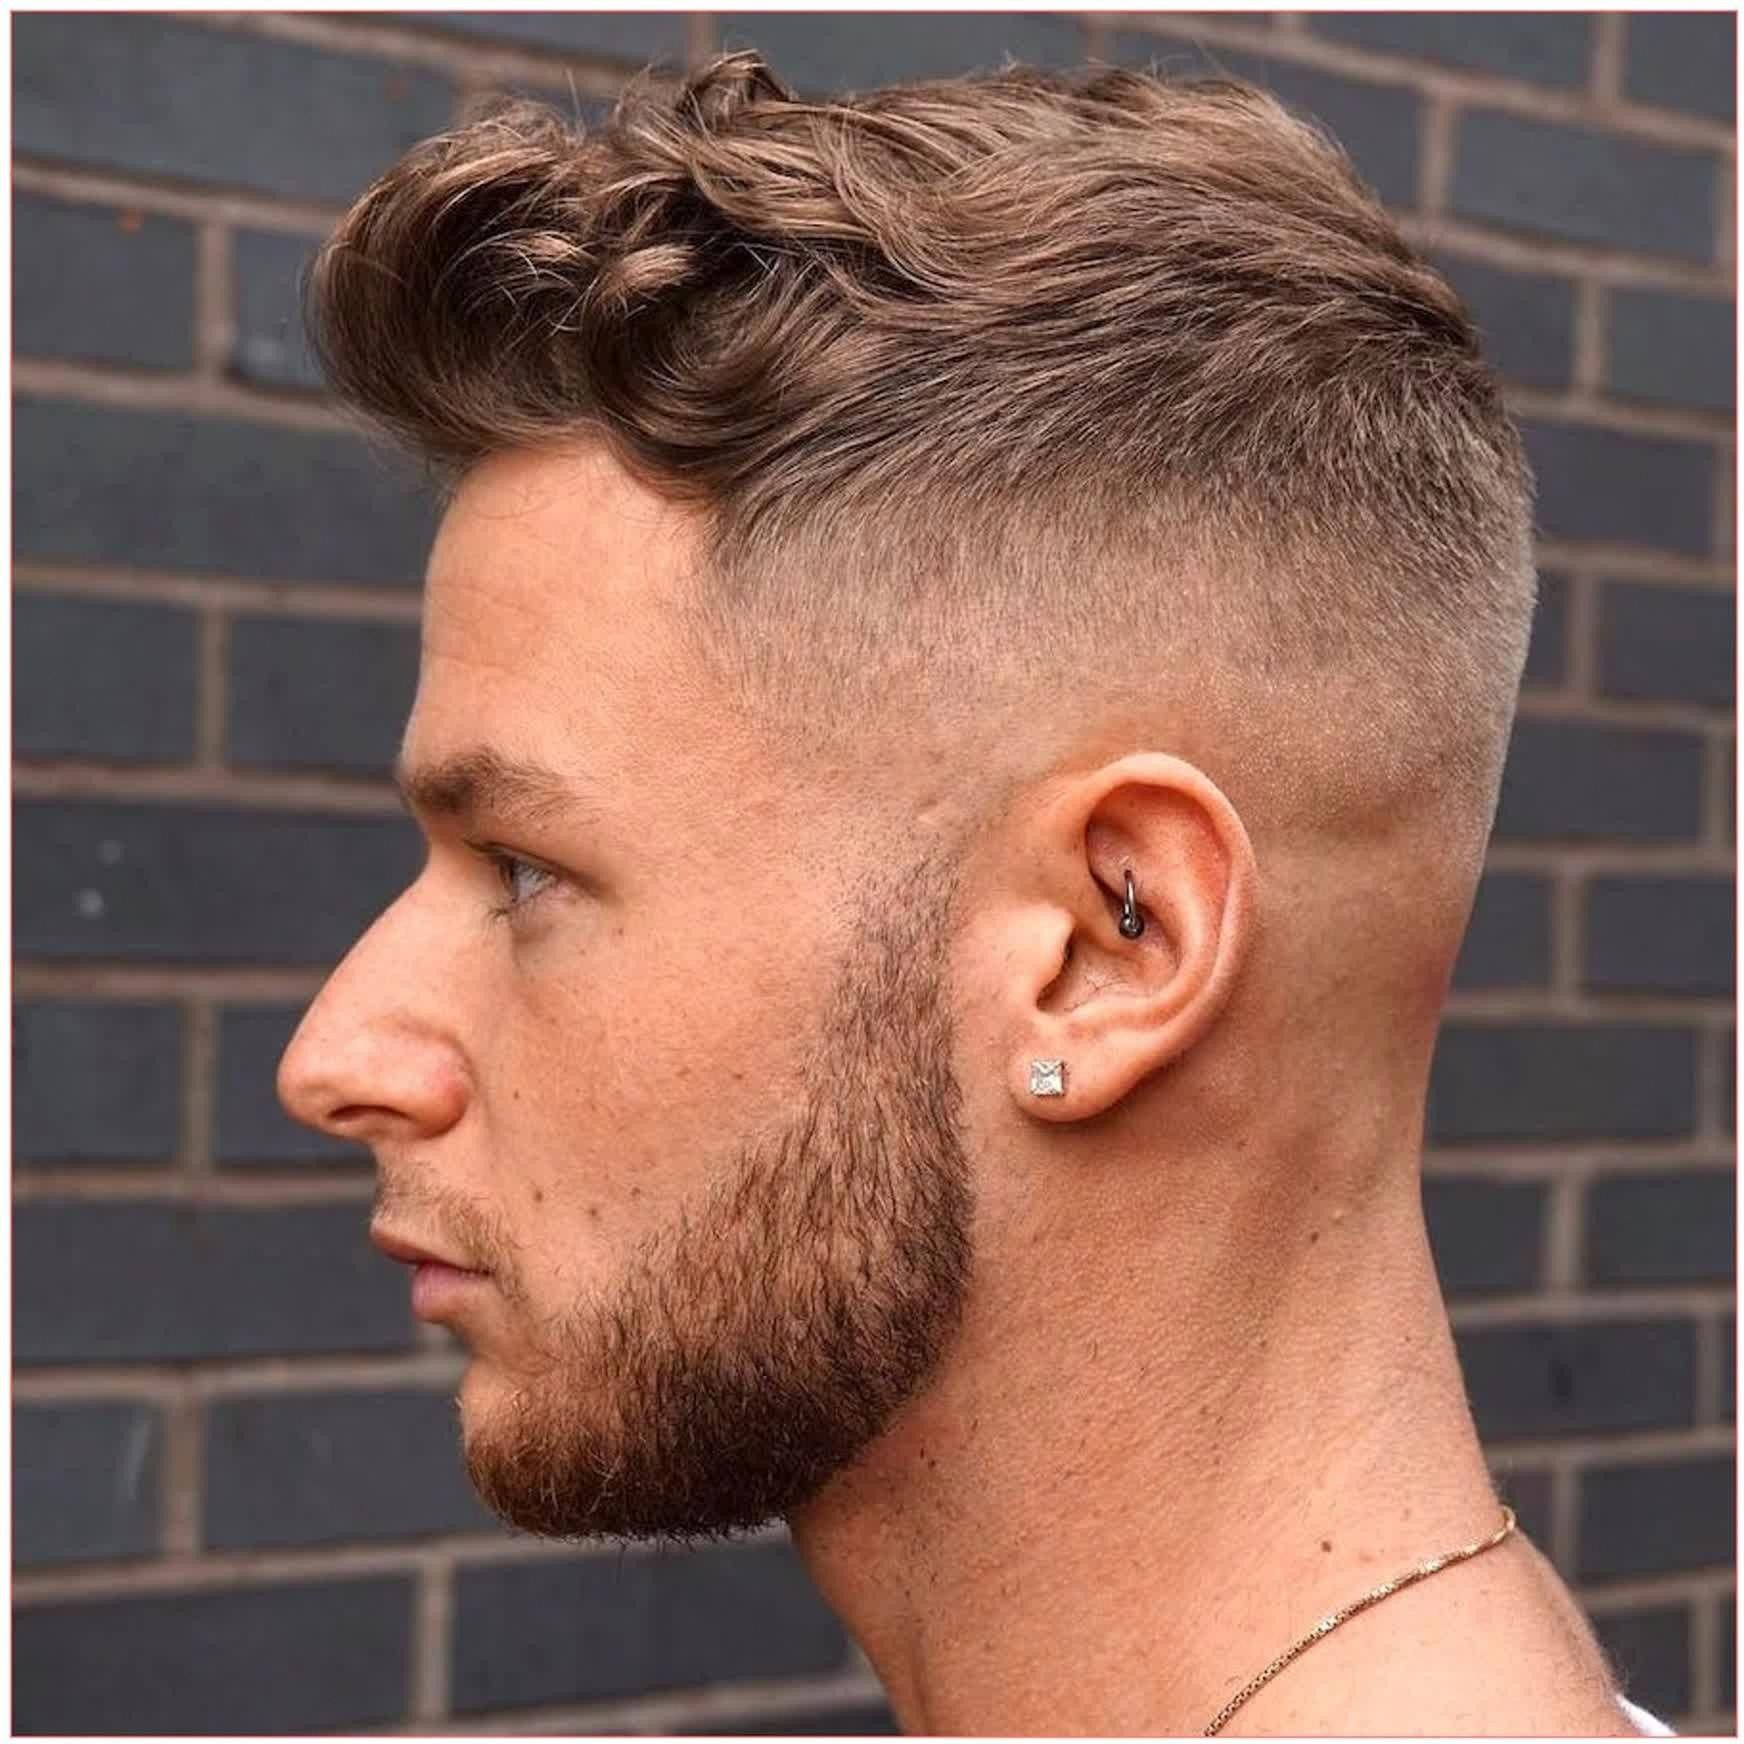 All The Preferred Hairstyles For Men With Thinning Hair Up Front Thinninghair Wavy Hair Men Mid Fade Haircut Curly Hair Fade